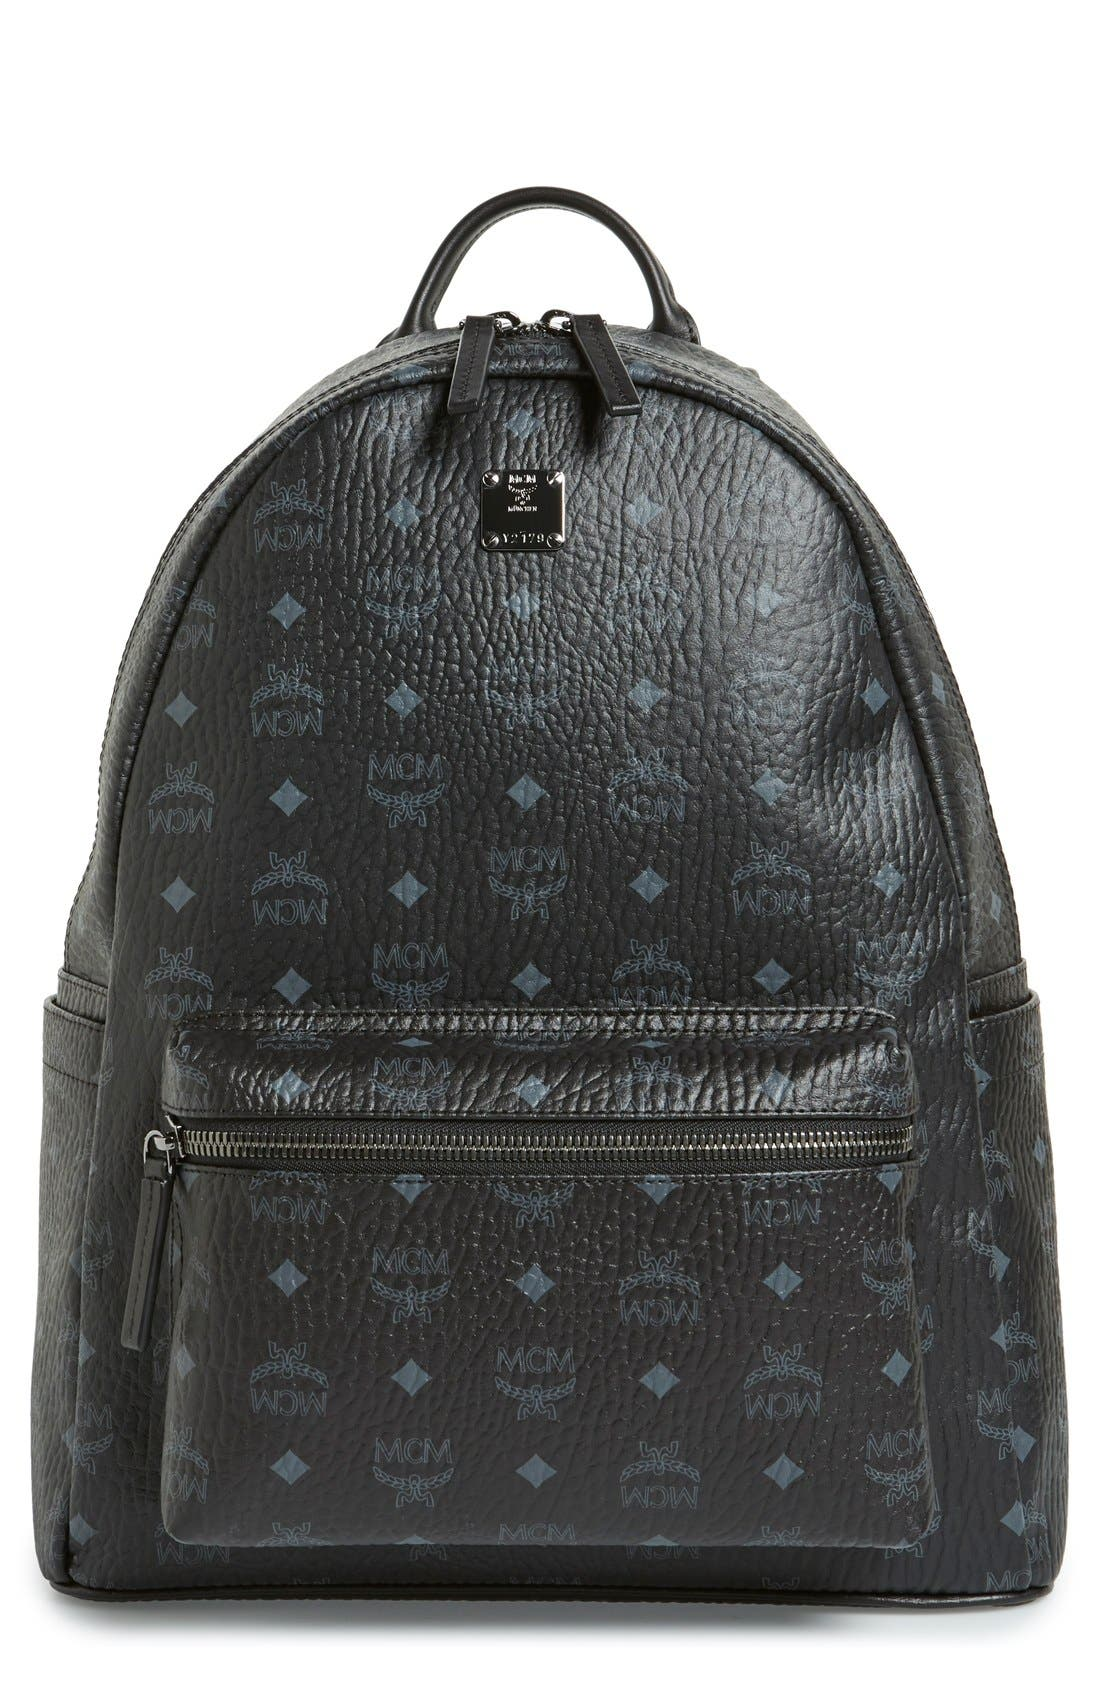 MCM Medium Stark - Visetos Backpack, Main, color, BLACK